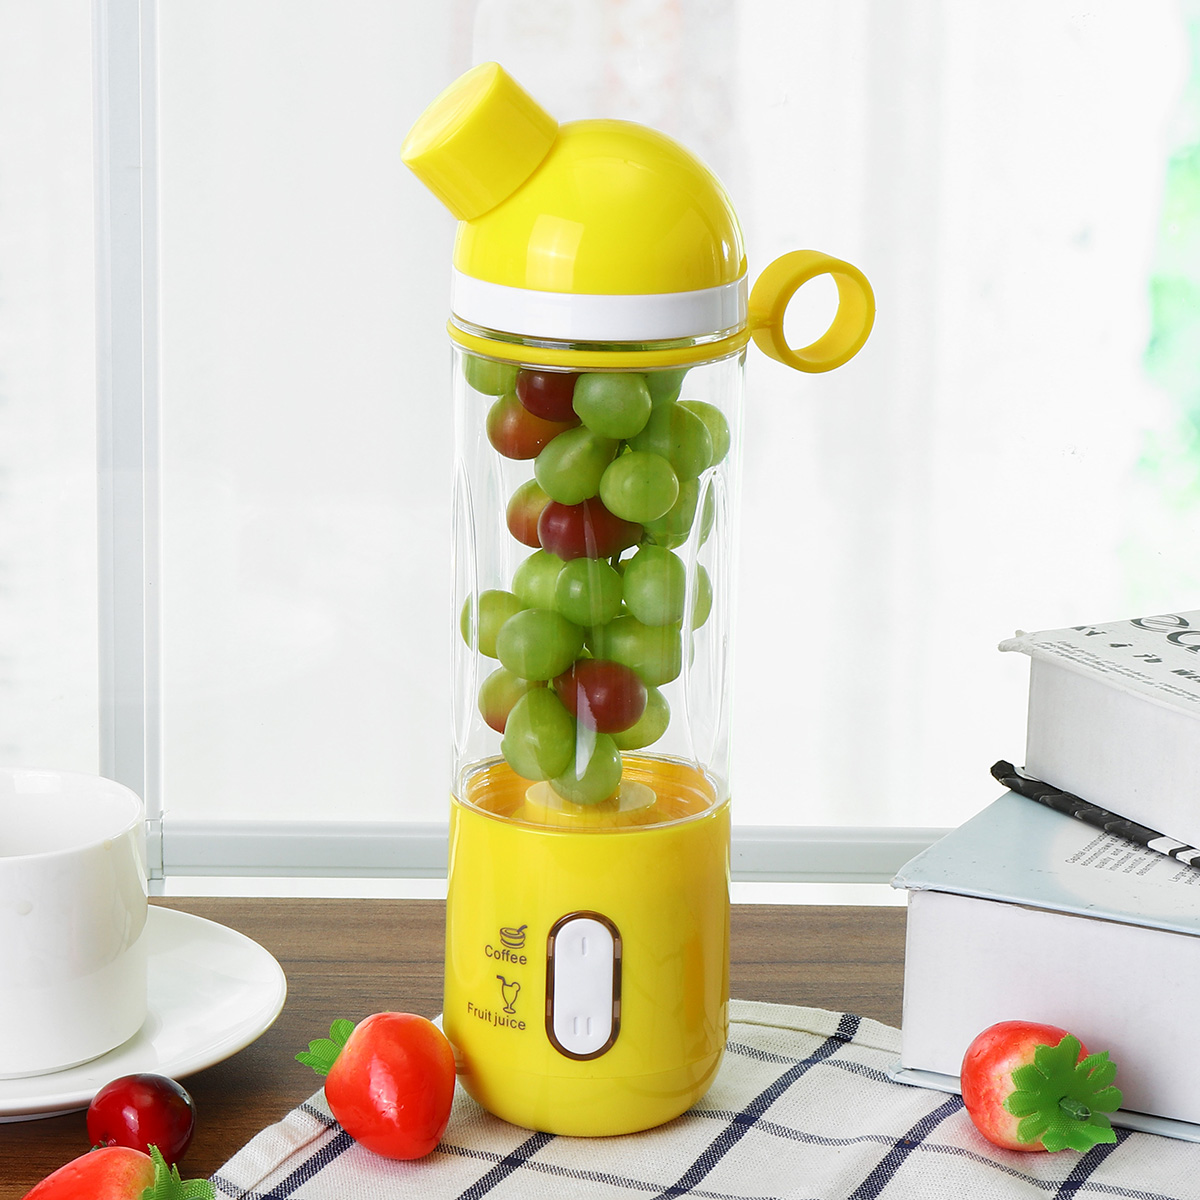 400ML USB Mini Fruit Juicer Cup Handheld Extractor Smoothie Maker Ice Crusher Bottle Portable With USB Cable... by